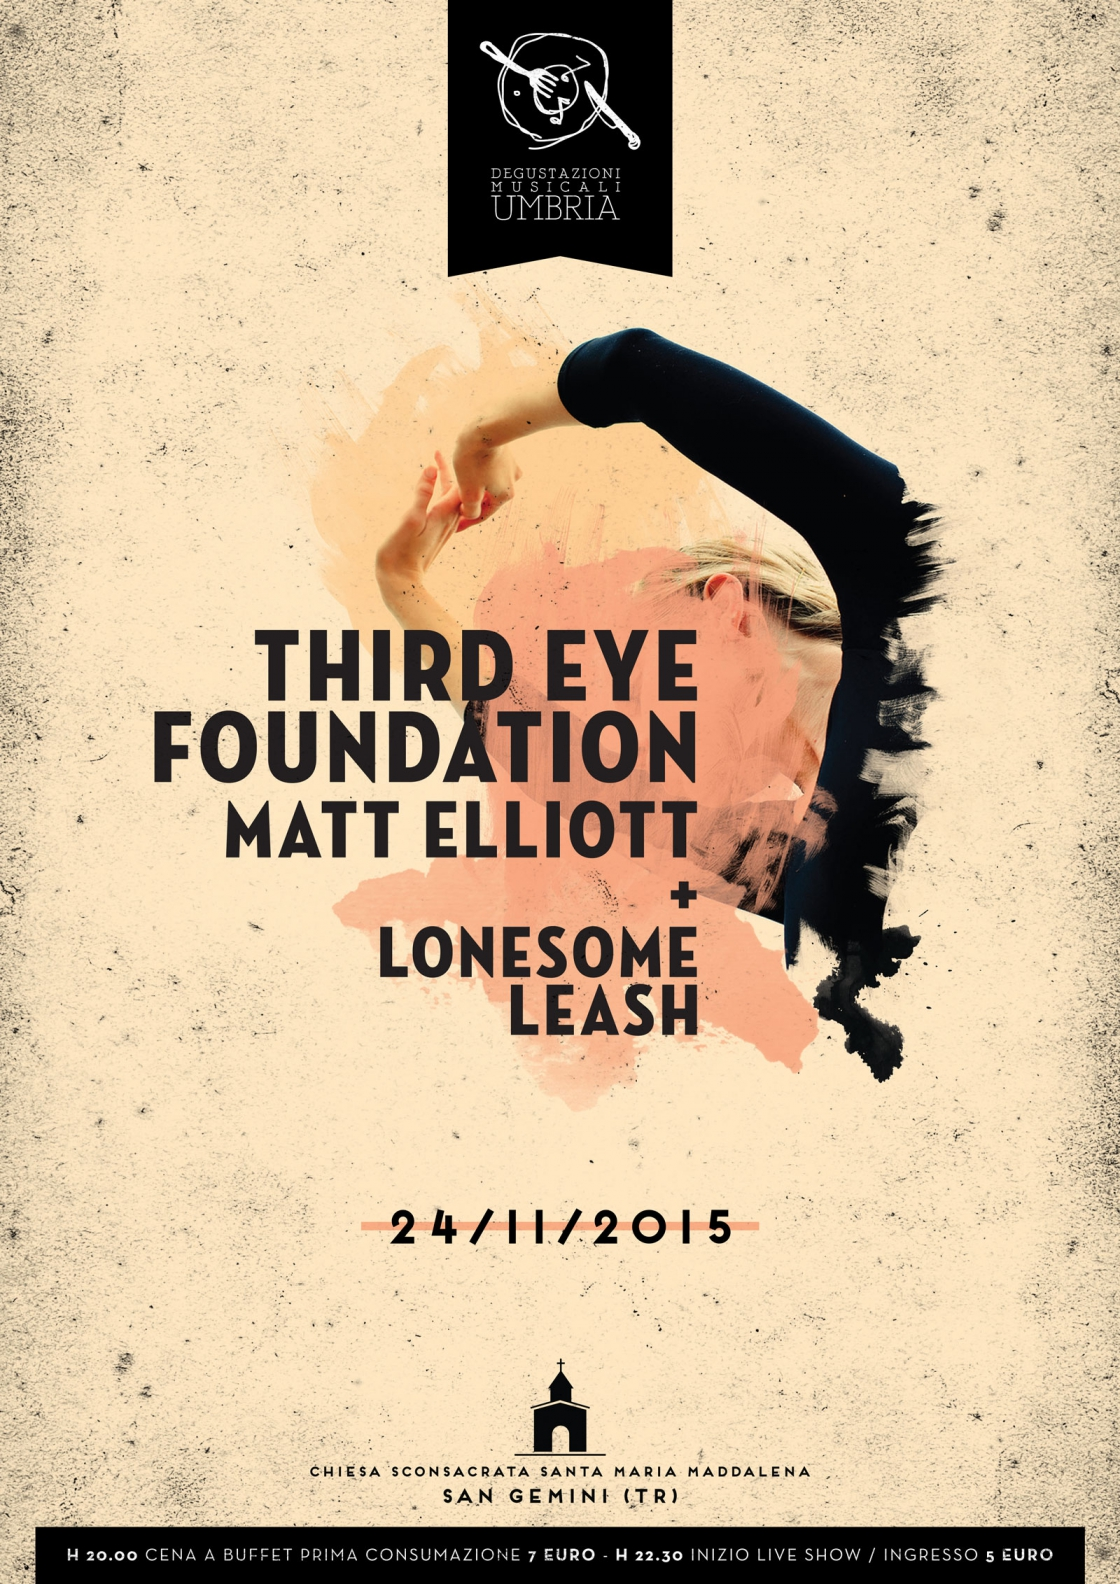 Third Eye Foundation (Matt Elliott) <br /> Lonesome Leash